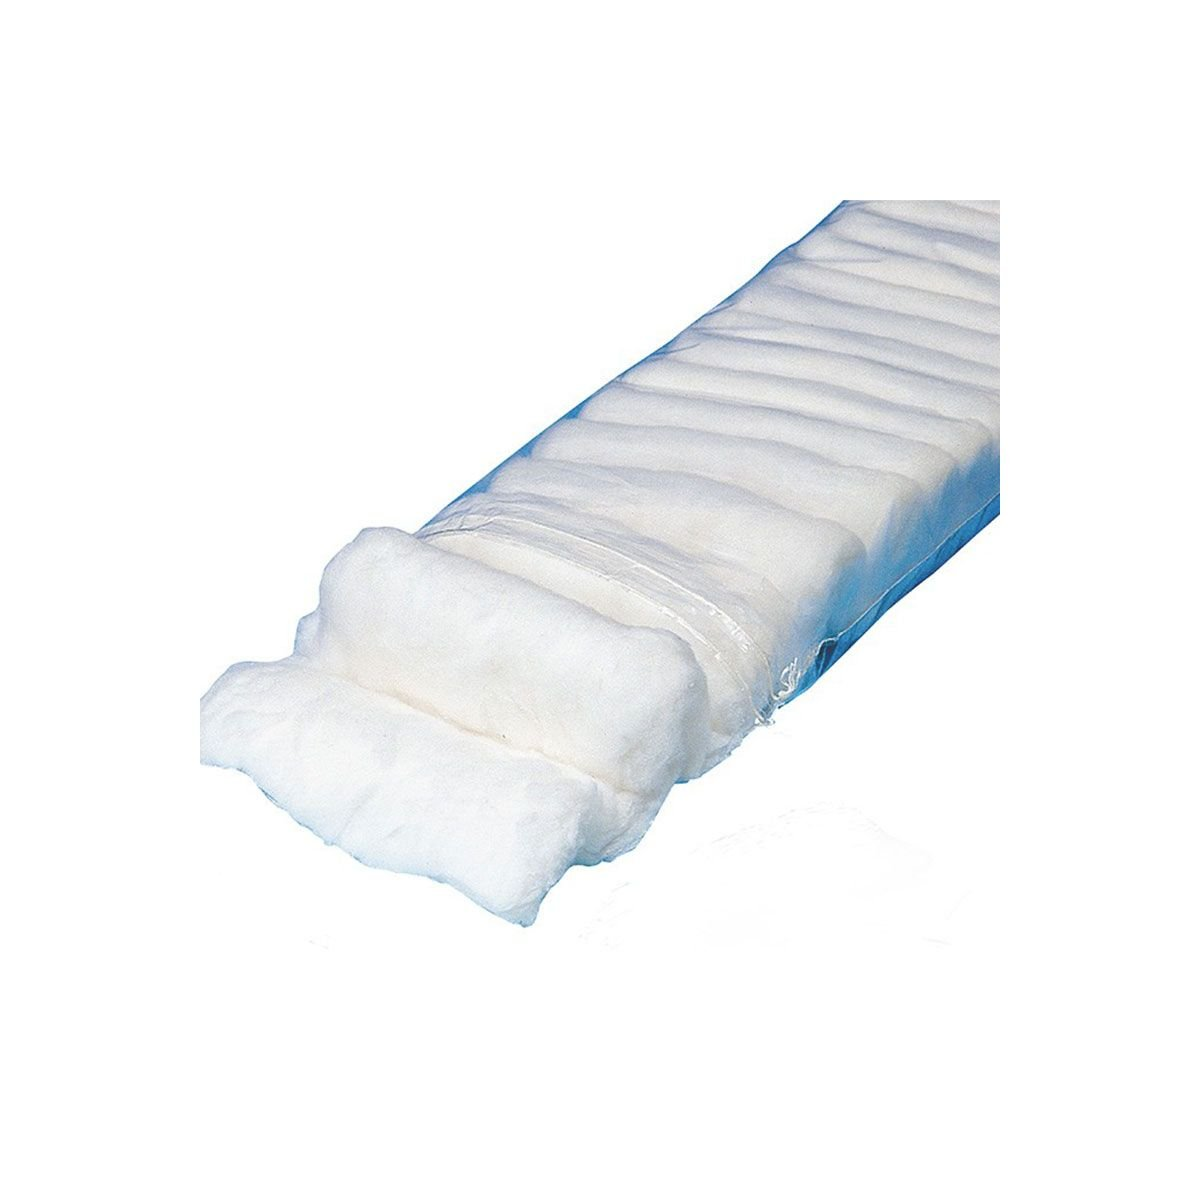 By Antigua Health Care Cot-250/_5 Coton Accord/éon 100/% Coton Hydrophile Carton De 5 Sachets De 250 Grammes